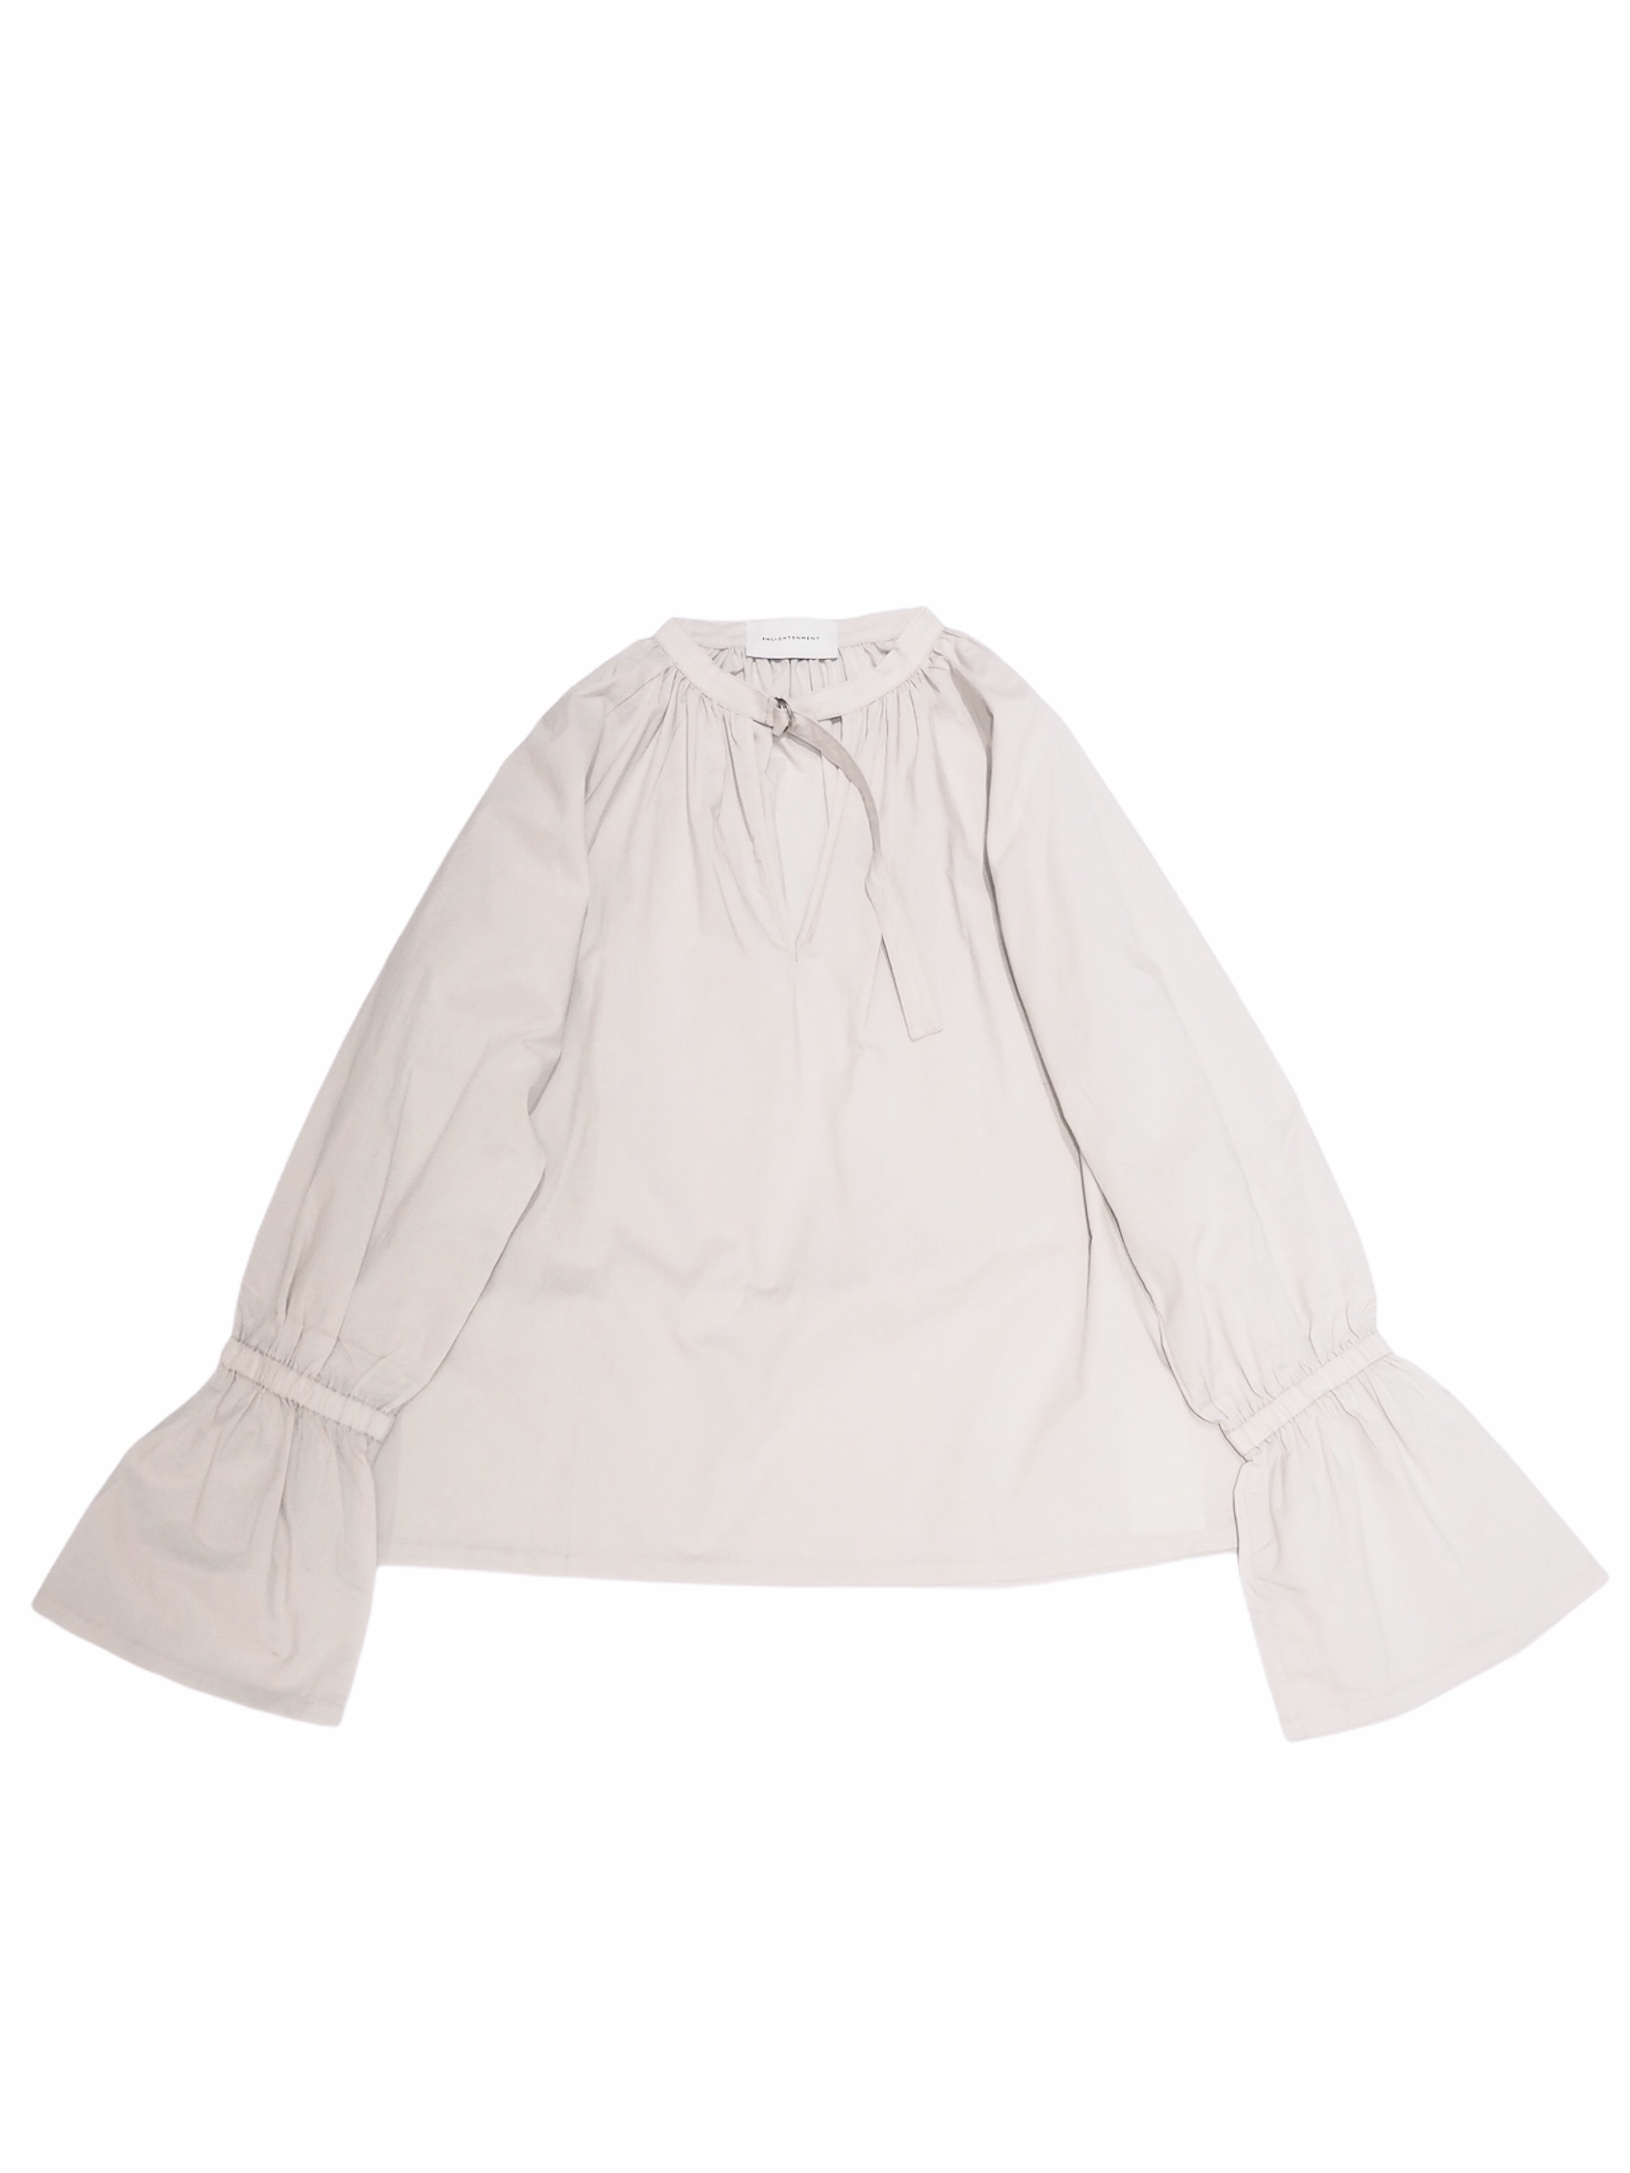 【ENLIGHTENMENT】GATHER BLOUSE